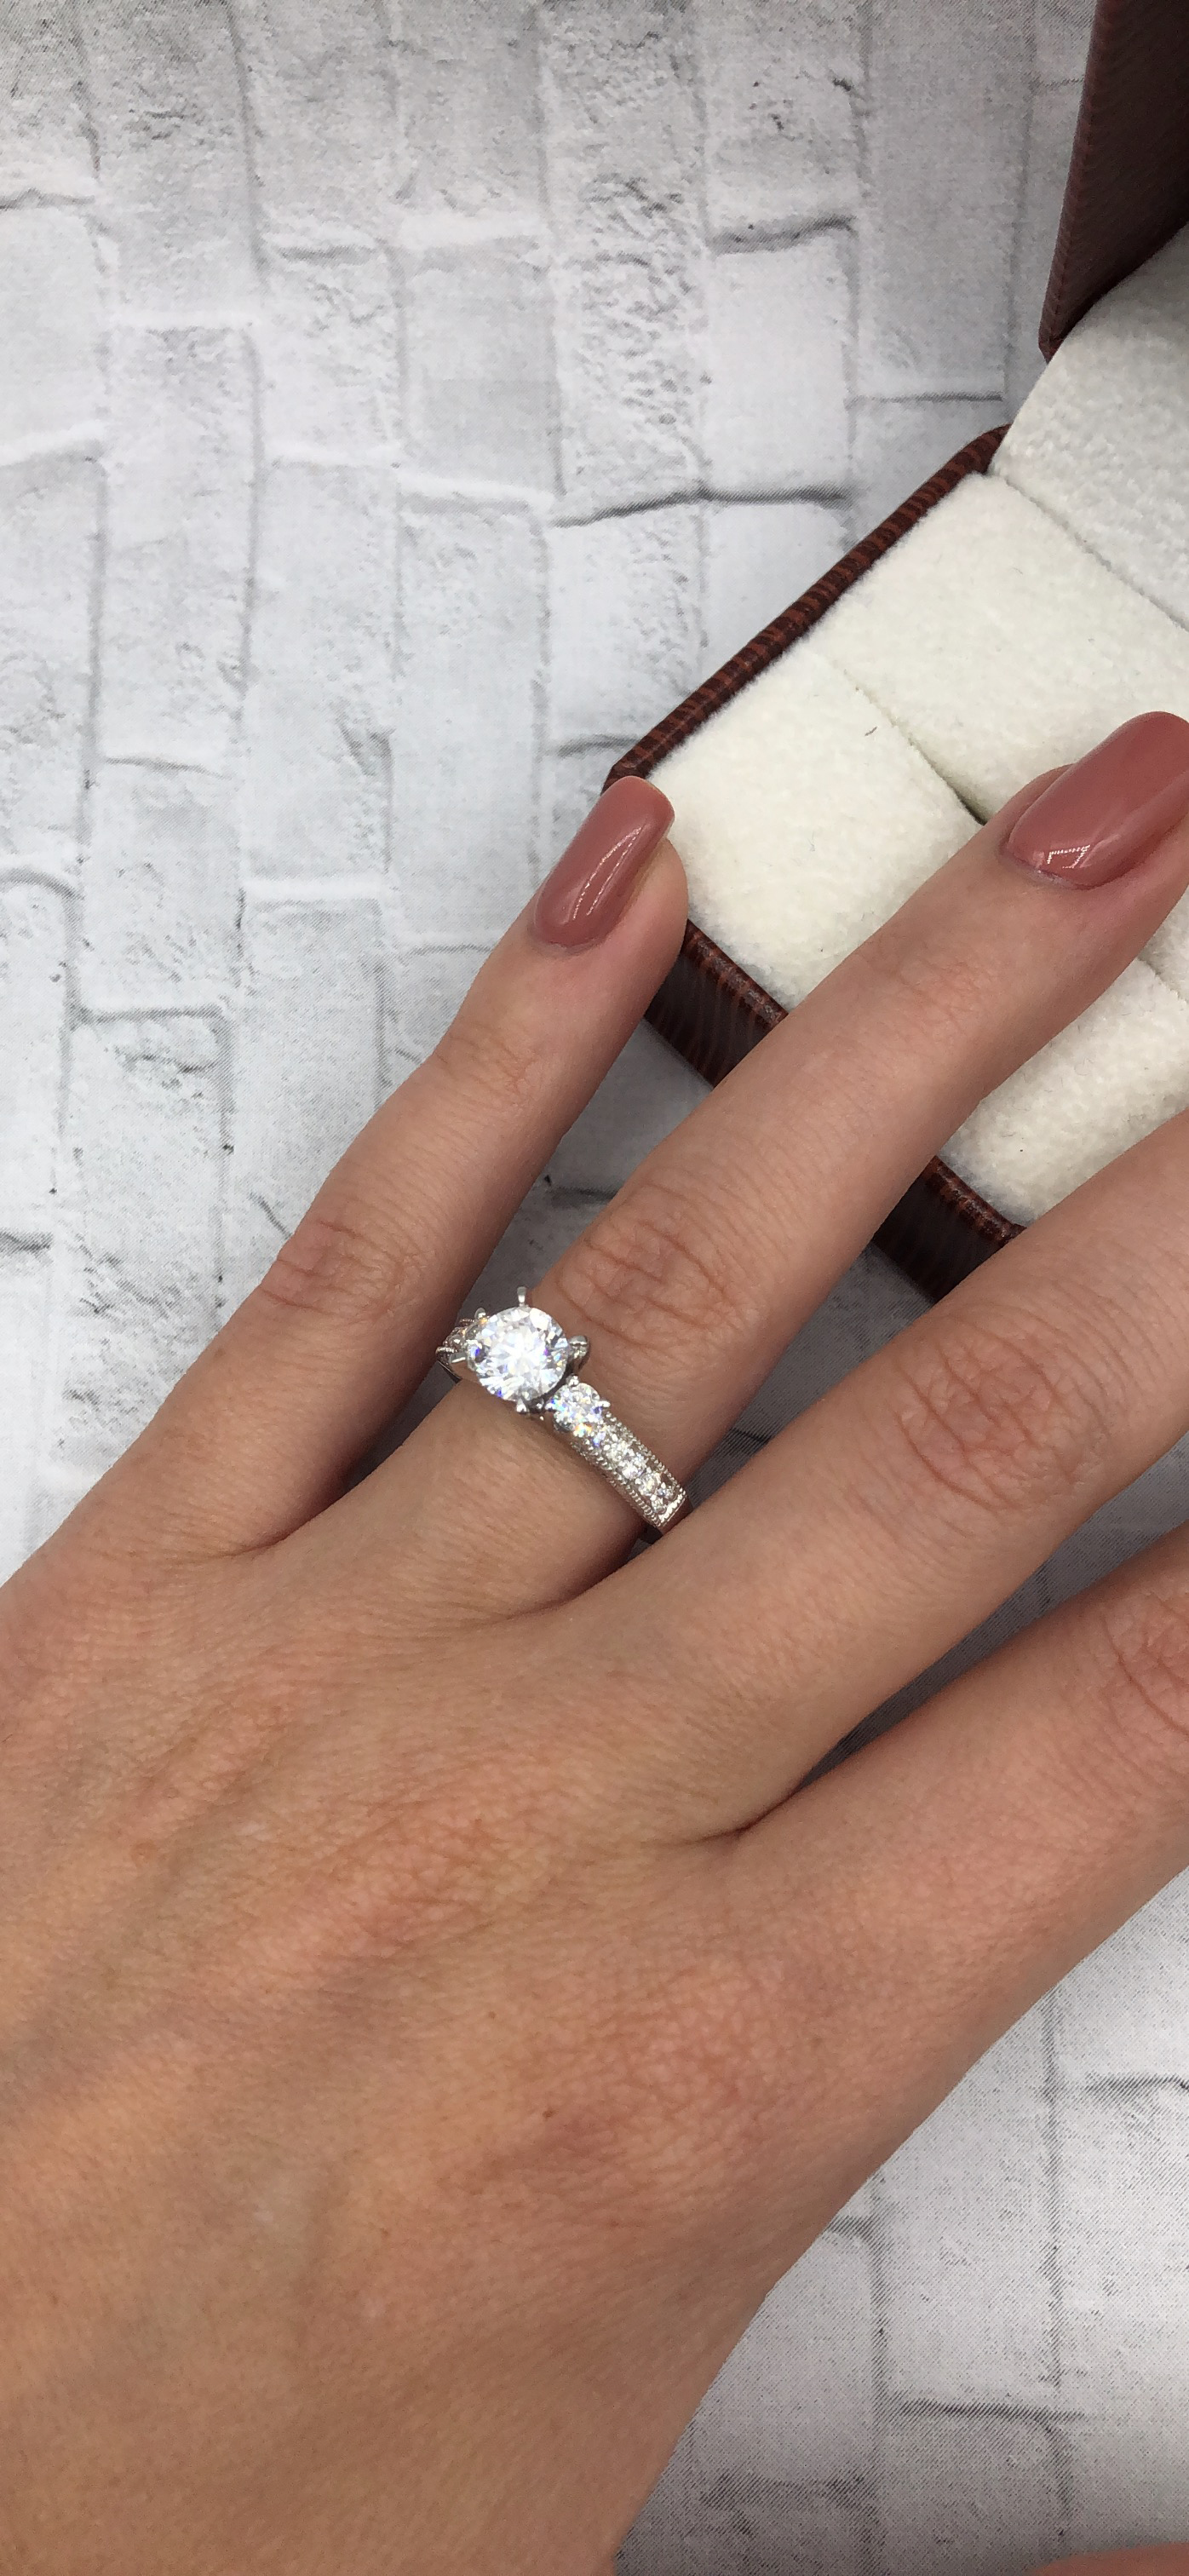 NEW new new engagement